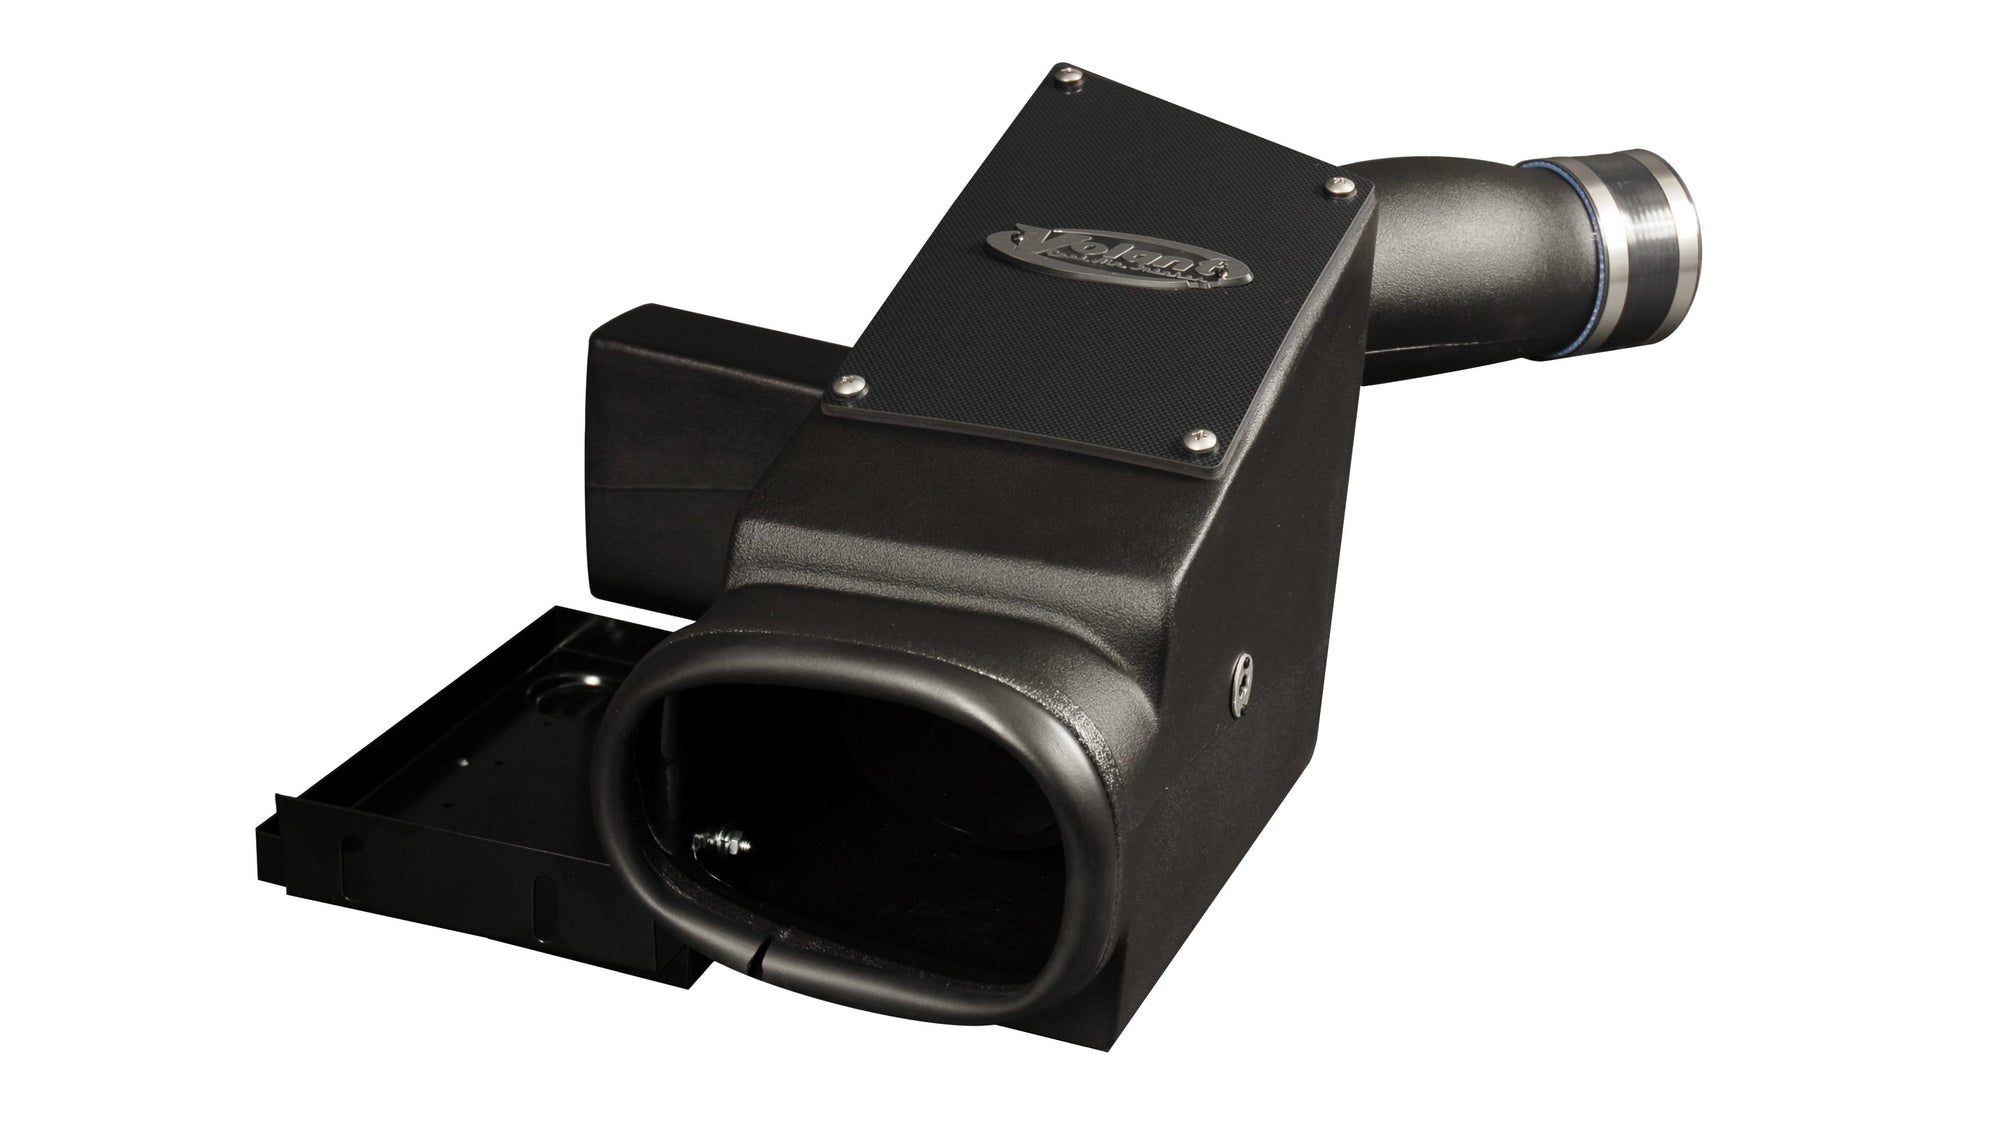 1999-2003 Ford F-350 Super Duty 7.3L V8 Closed Box Air Intake 19873